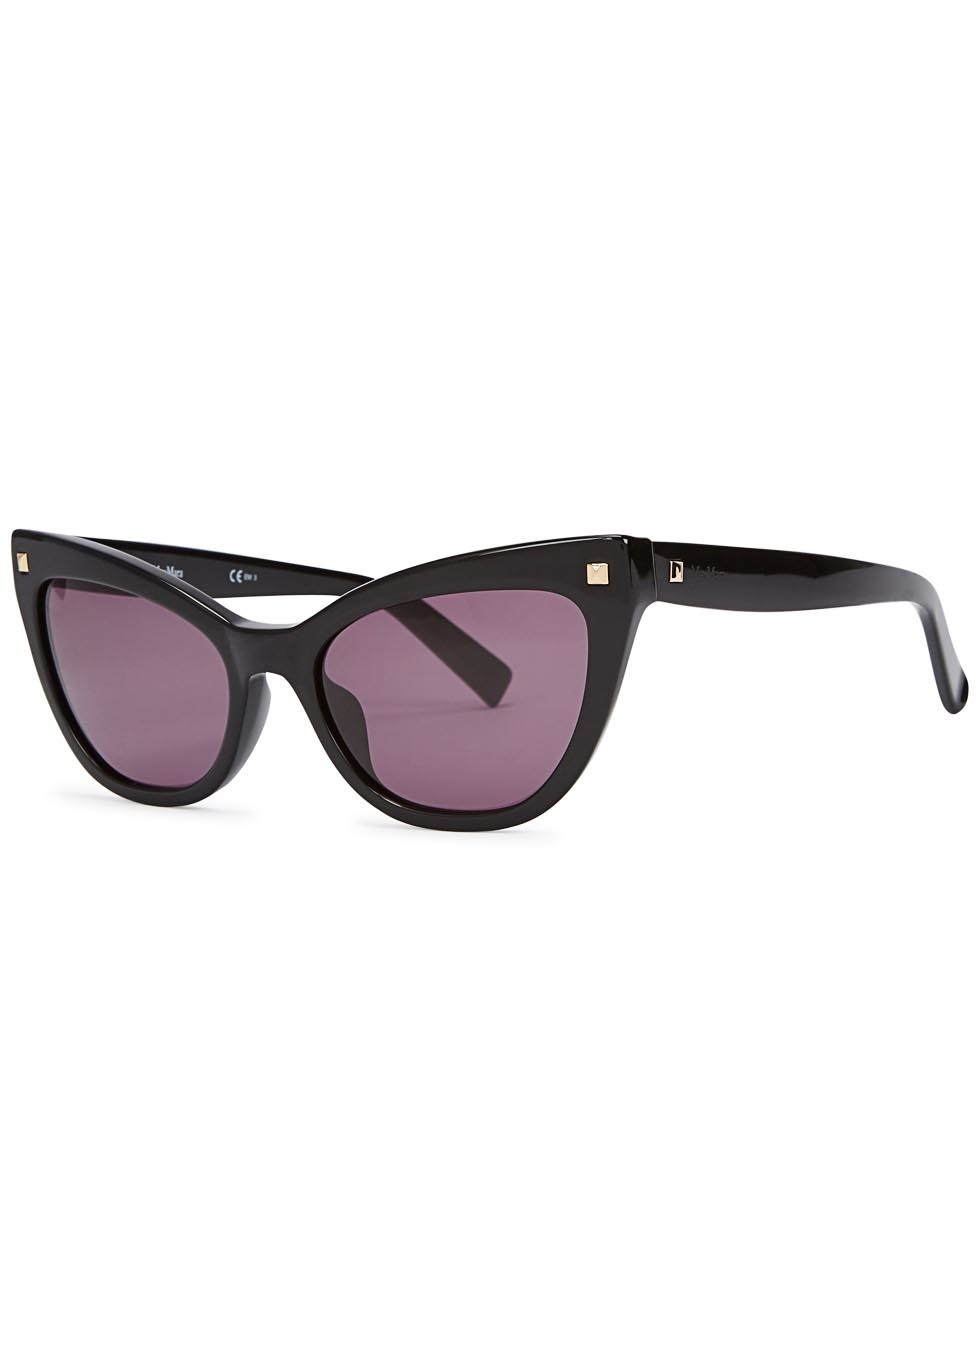 Black Cat Eye Sunglasses - predominant colour: black; occasions: casual, holiday; style: cateye; size: standard; material: plastic/rubber; pattern: plain; finish: plain; season: a/w 2015; wardrobe: basic